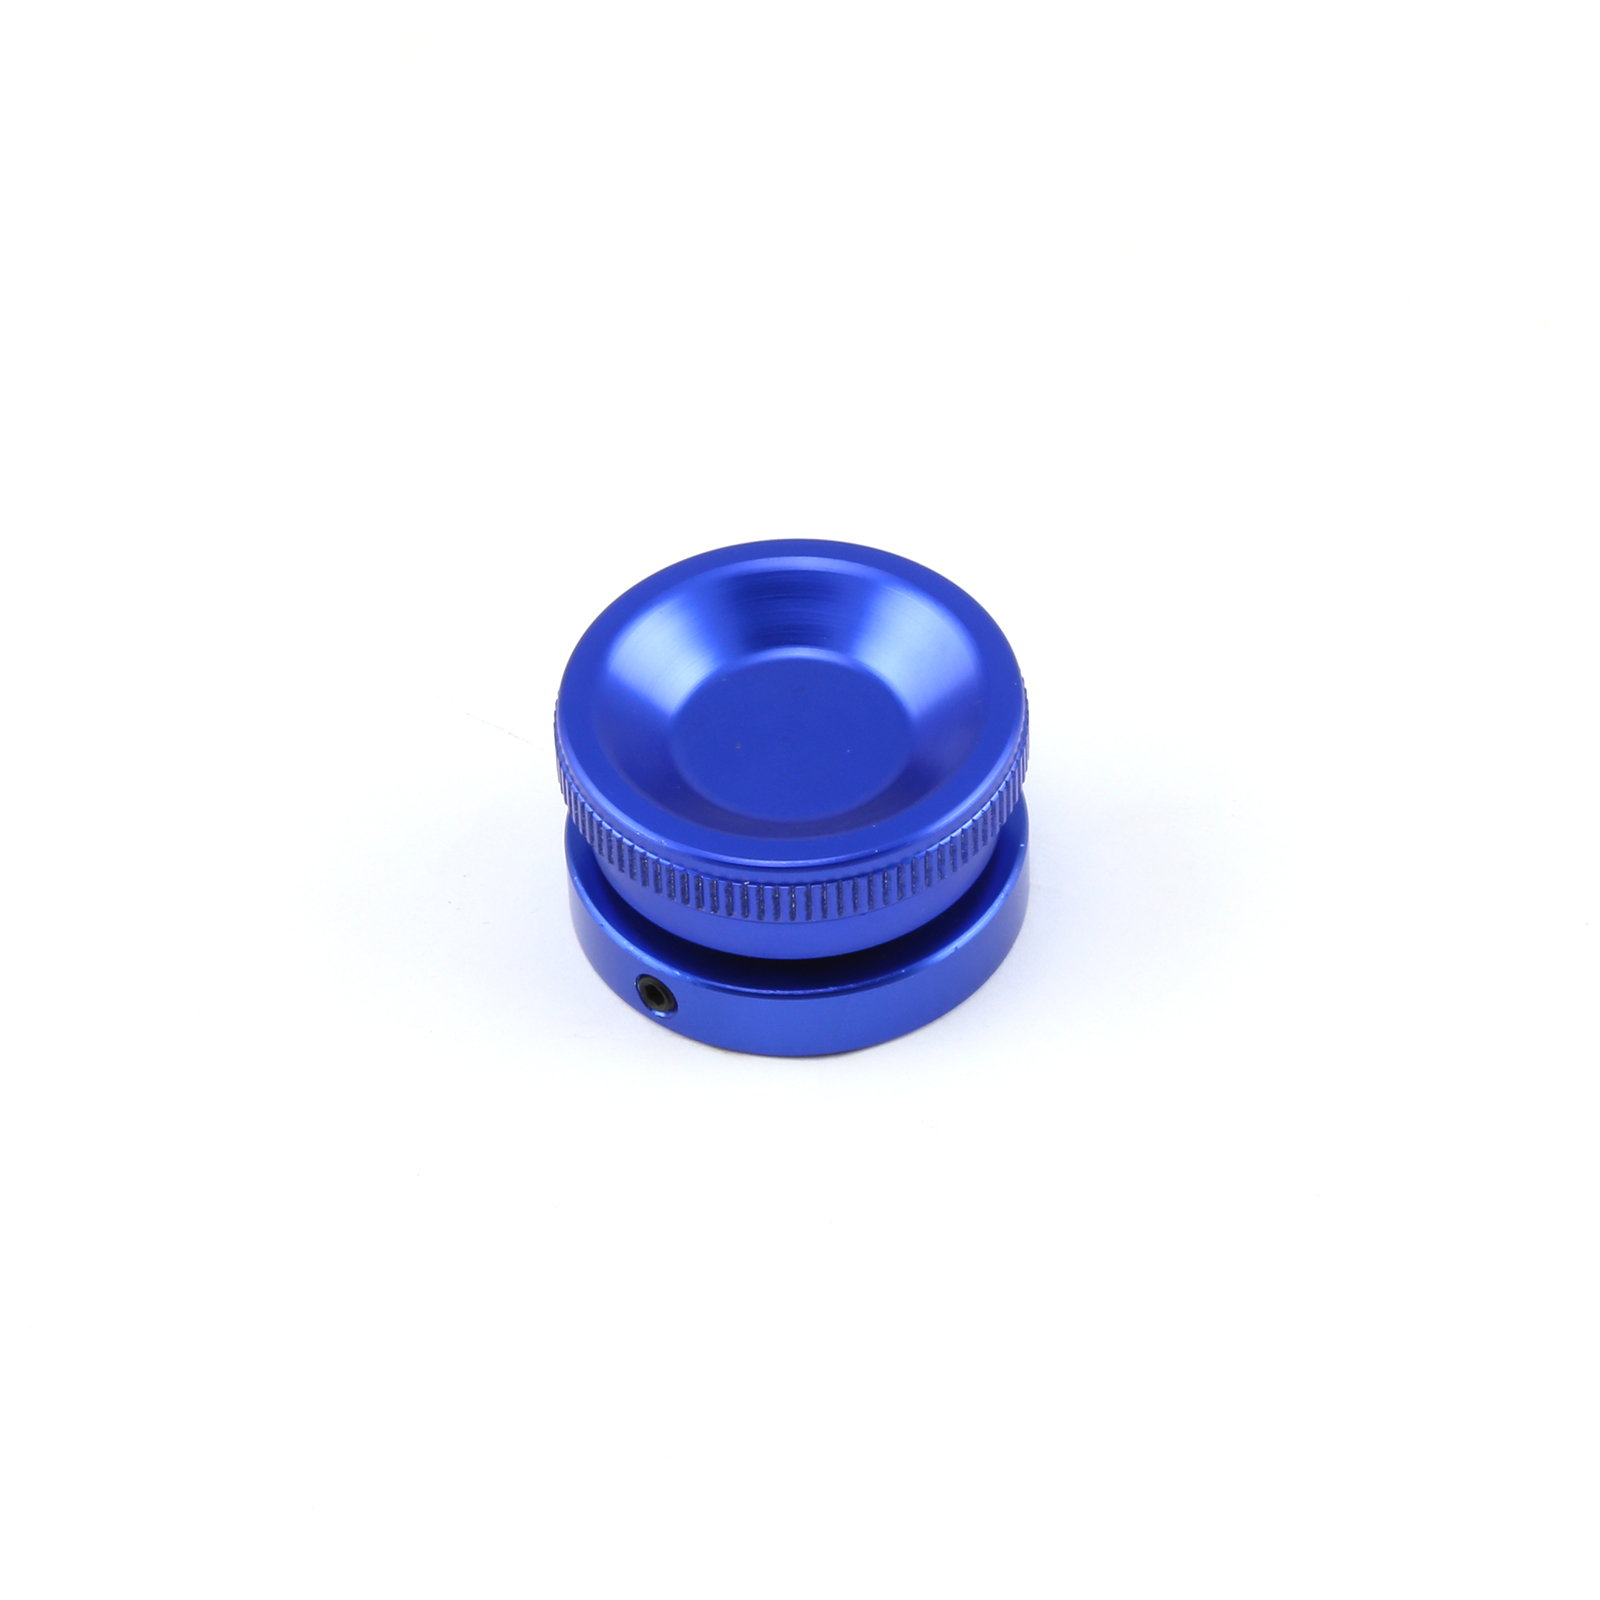 Billet Aluminum Screw-in Valve Cover Oil Filler Cap Kit - Blue Anodized